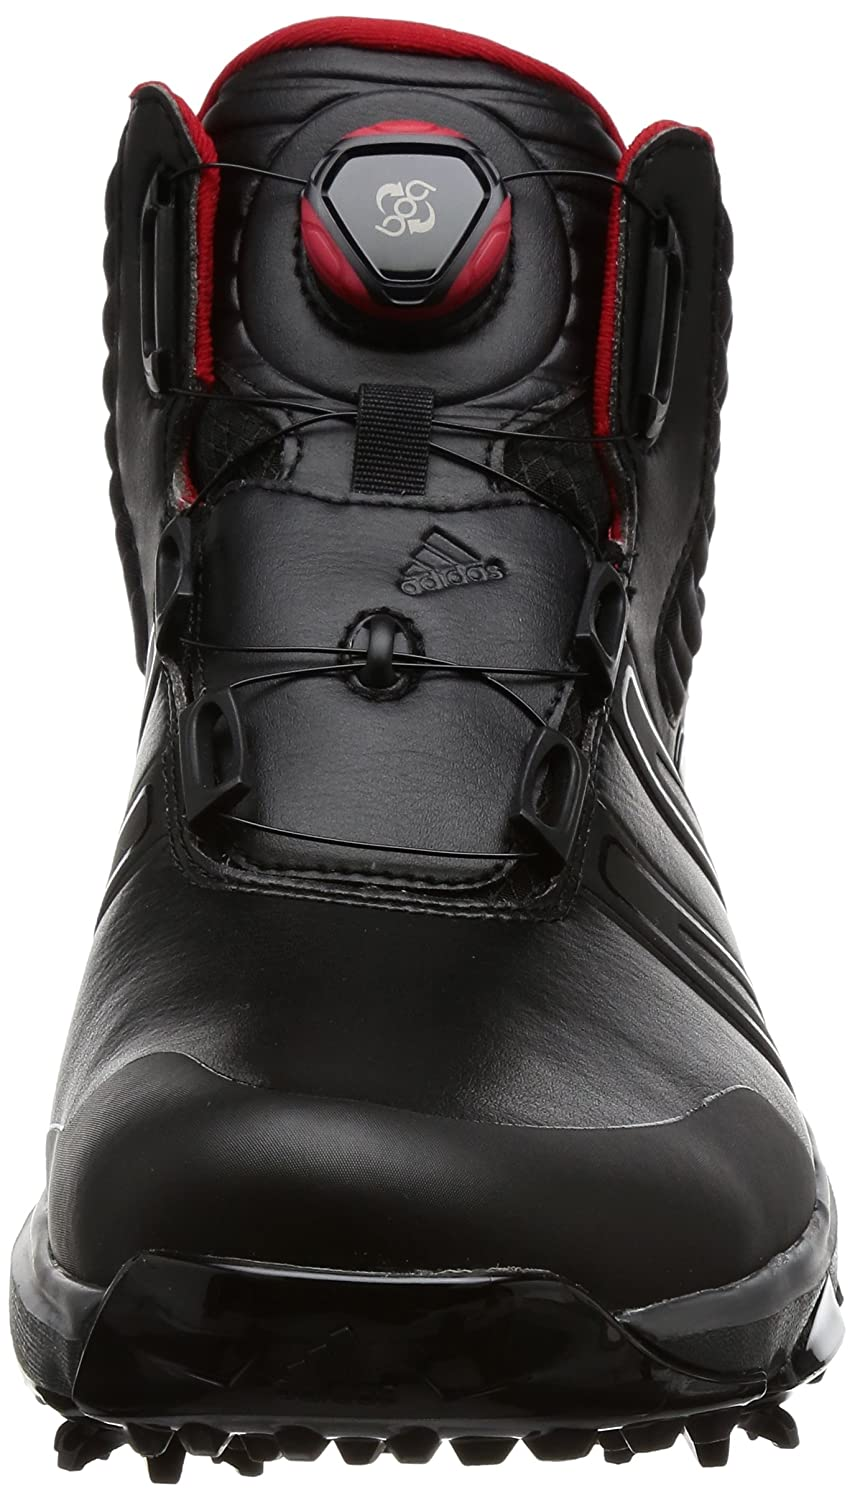 purchase cheap baf59 b2bb0 Amazon.com: adidas 2017 Mens Climaproof Boa Wide Waterproof Golf Shoes  Winter Boots Black/Black 10 UK: Sports & Outdoors